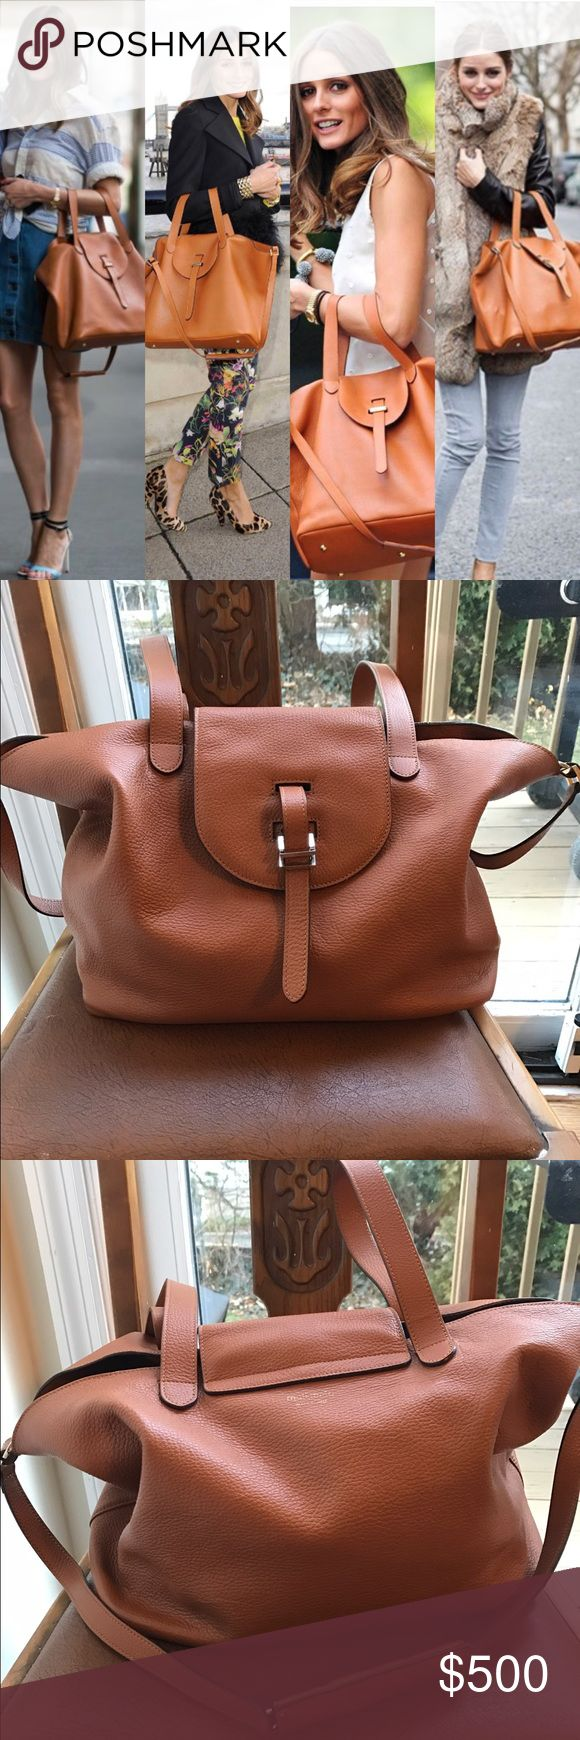 Meli Melo Thela bag ❤️ Olivia Palermo's favorite Outside in like new condition. Inside does show signs of wear -- see pics. But it's the inside sooo... Color is saddle/tan. See last pic for full details. Teathered zip pouch is included Meli Melo Bags Satchels